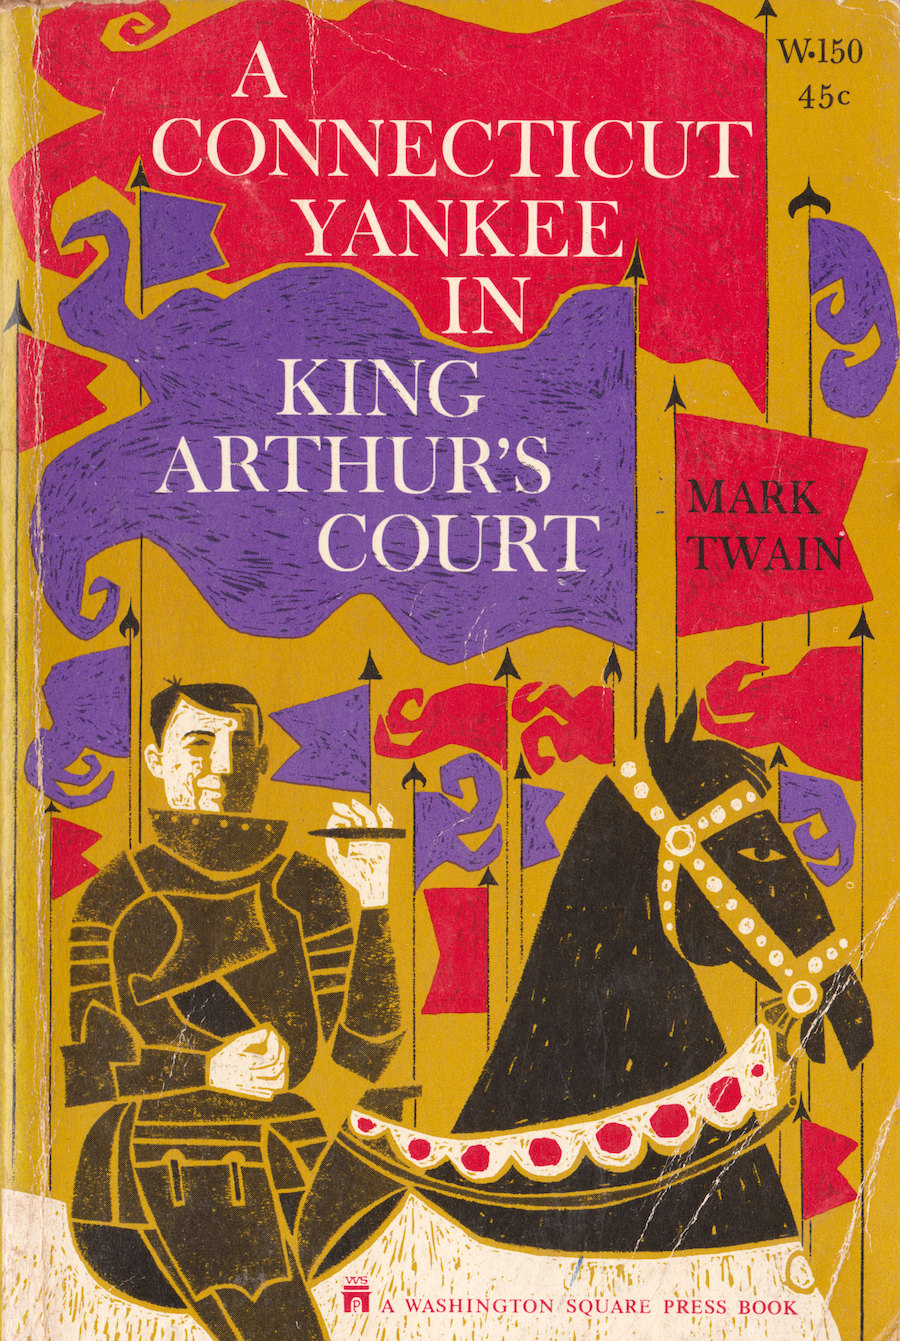 20. A Connecticut Yankee in King Arthur's Court